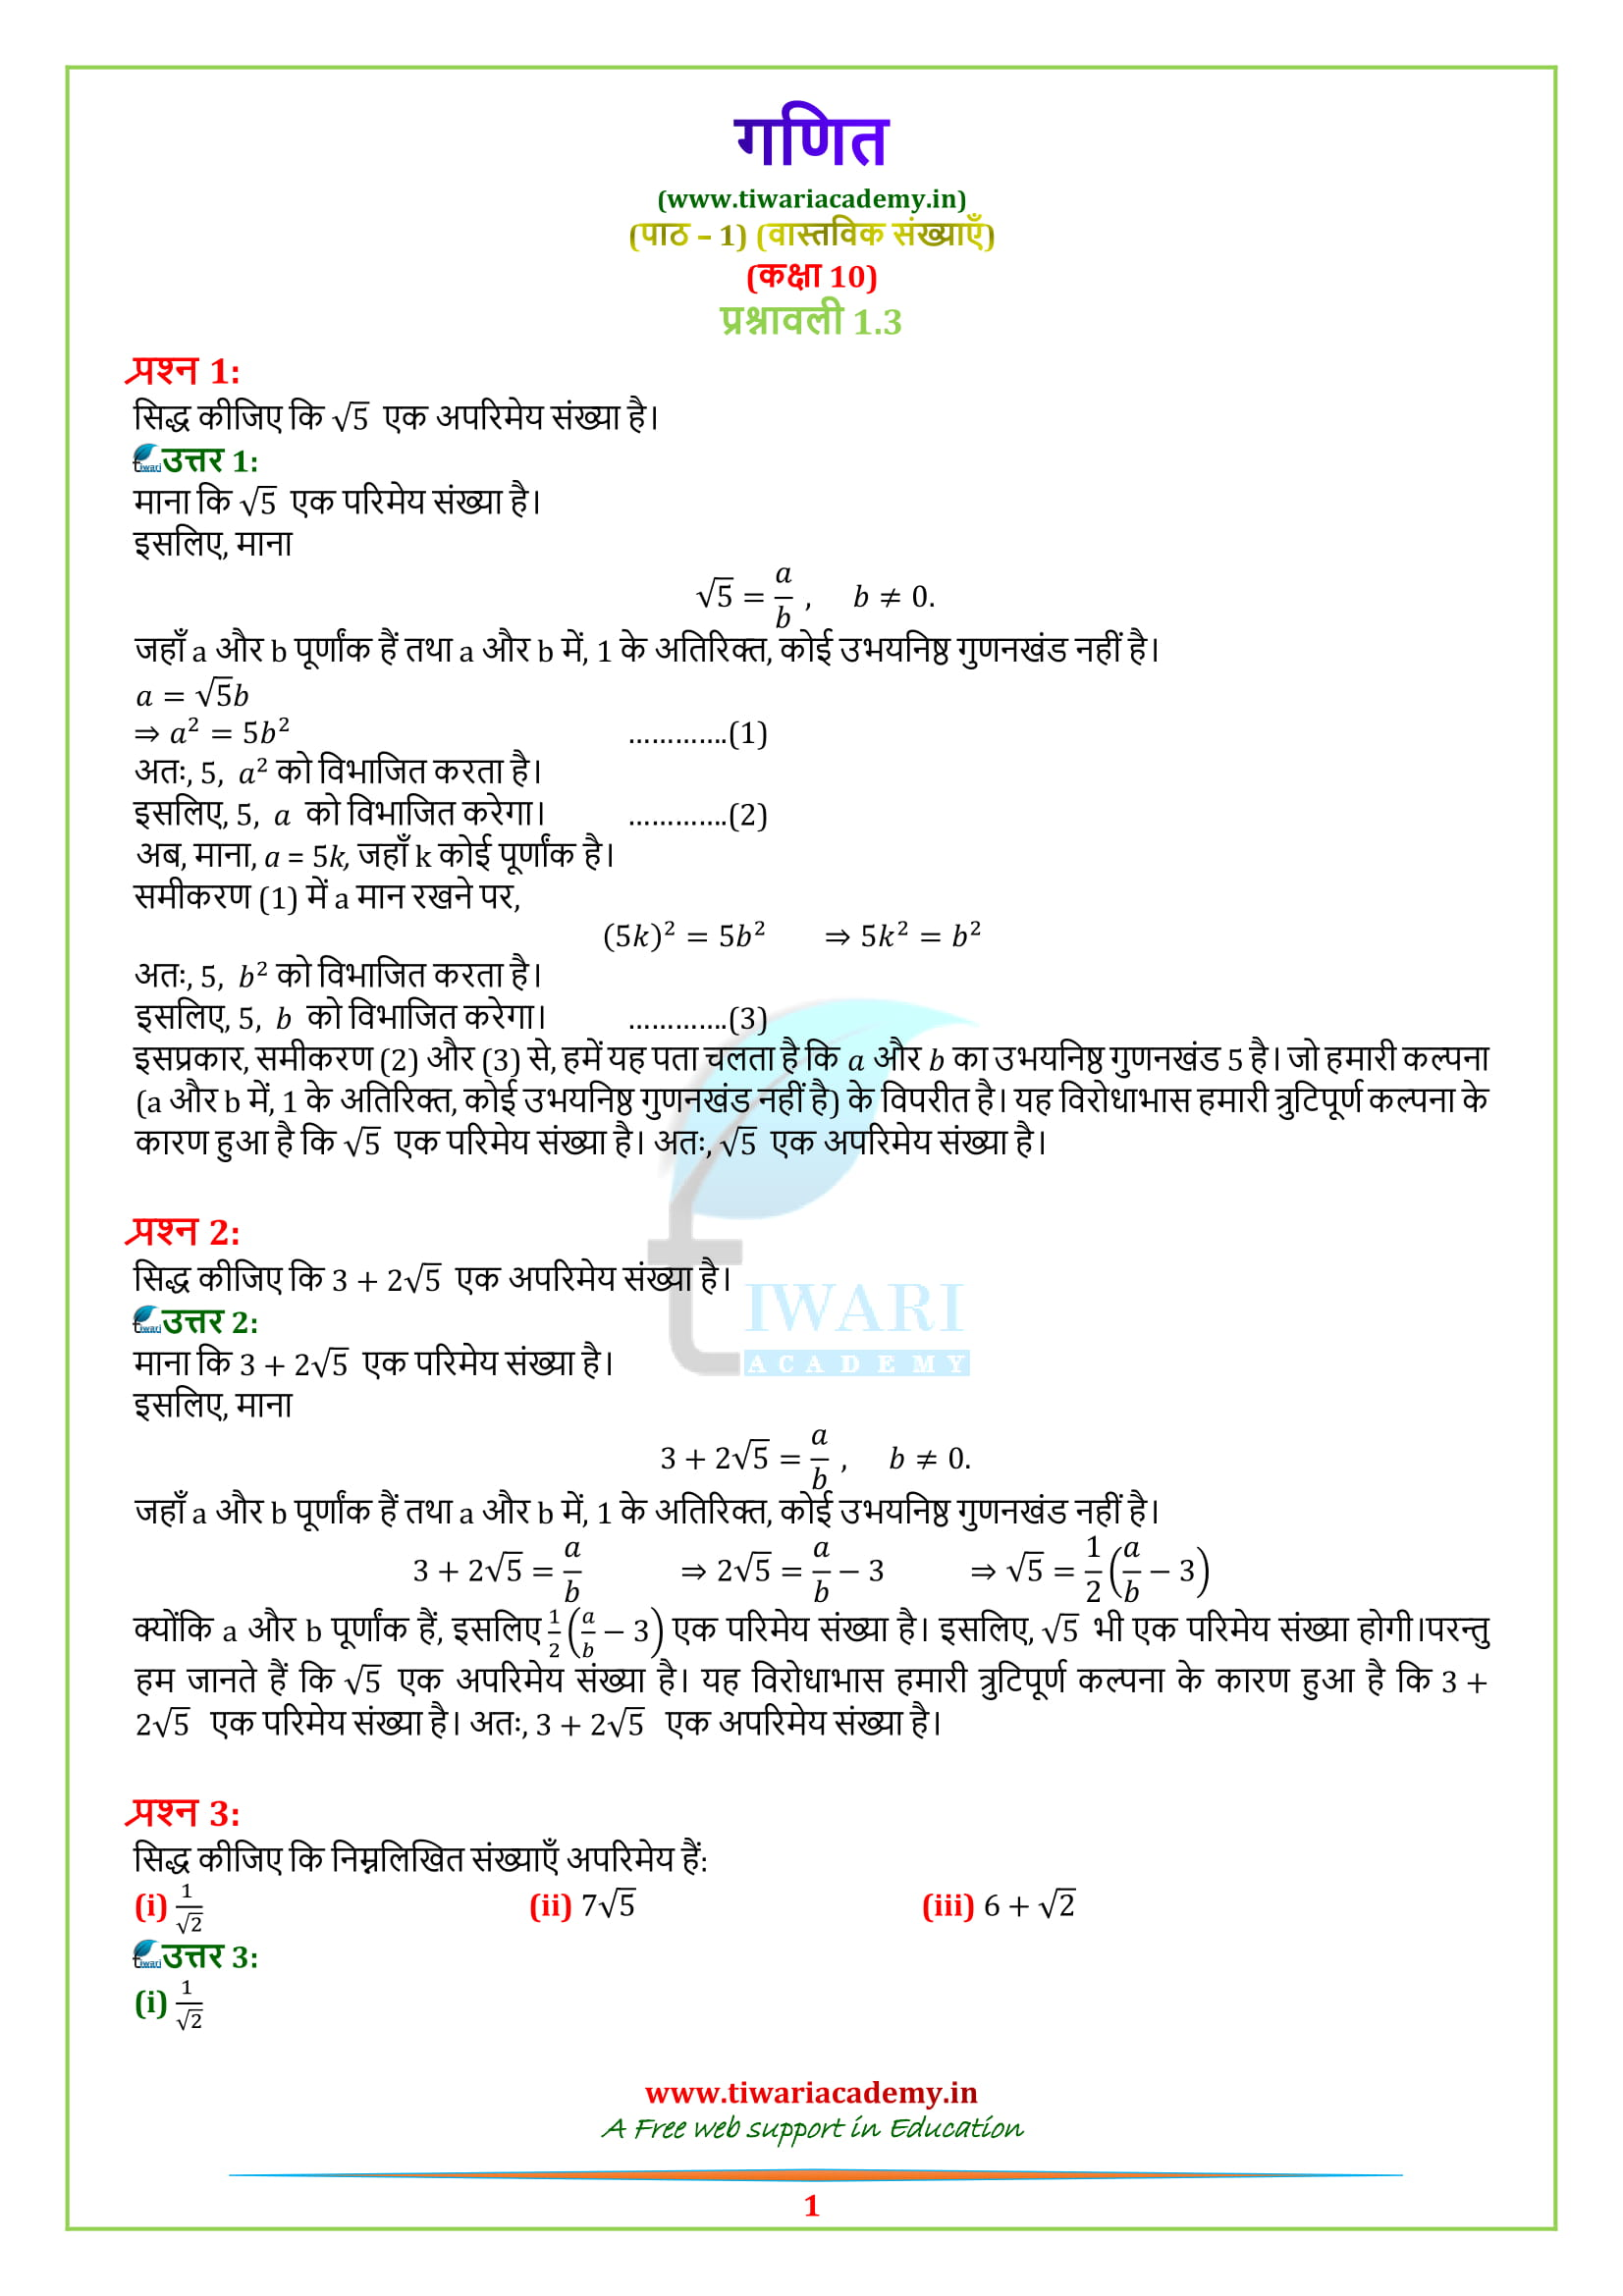 NCERT Solutions for class 10 Maths chapter 1 exercise 1.3 in hindi